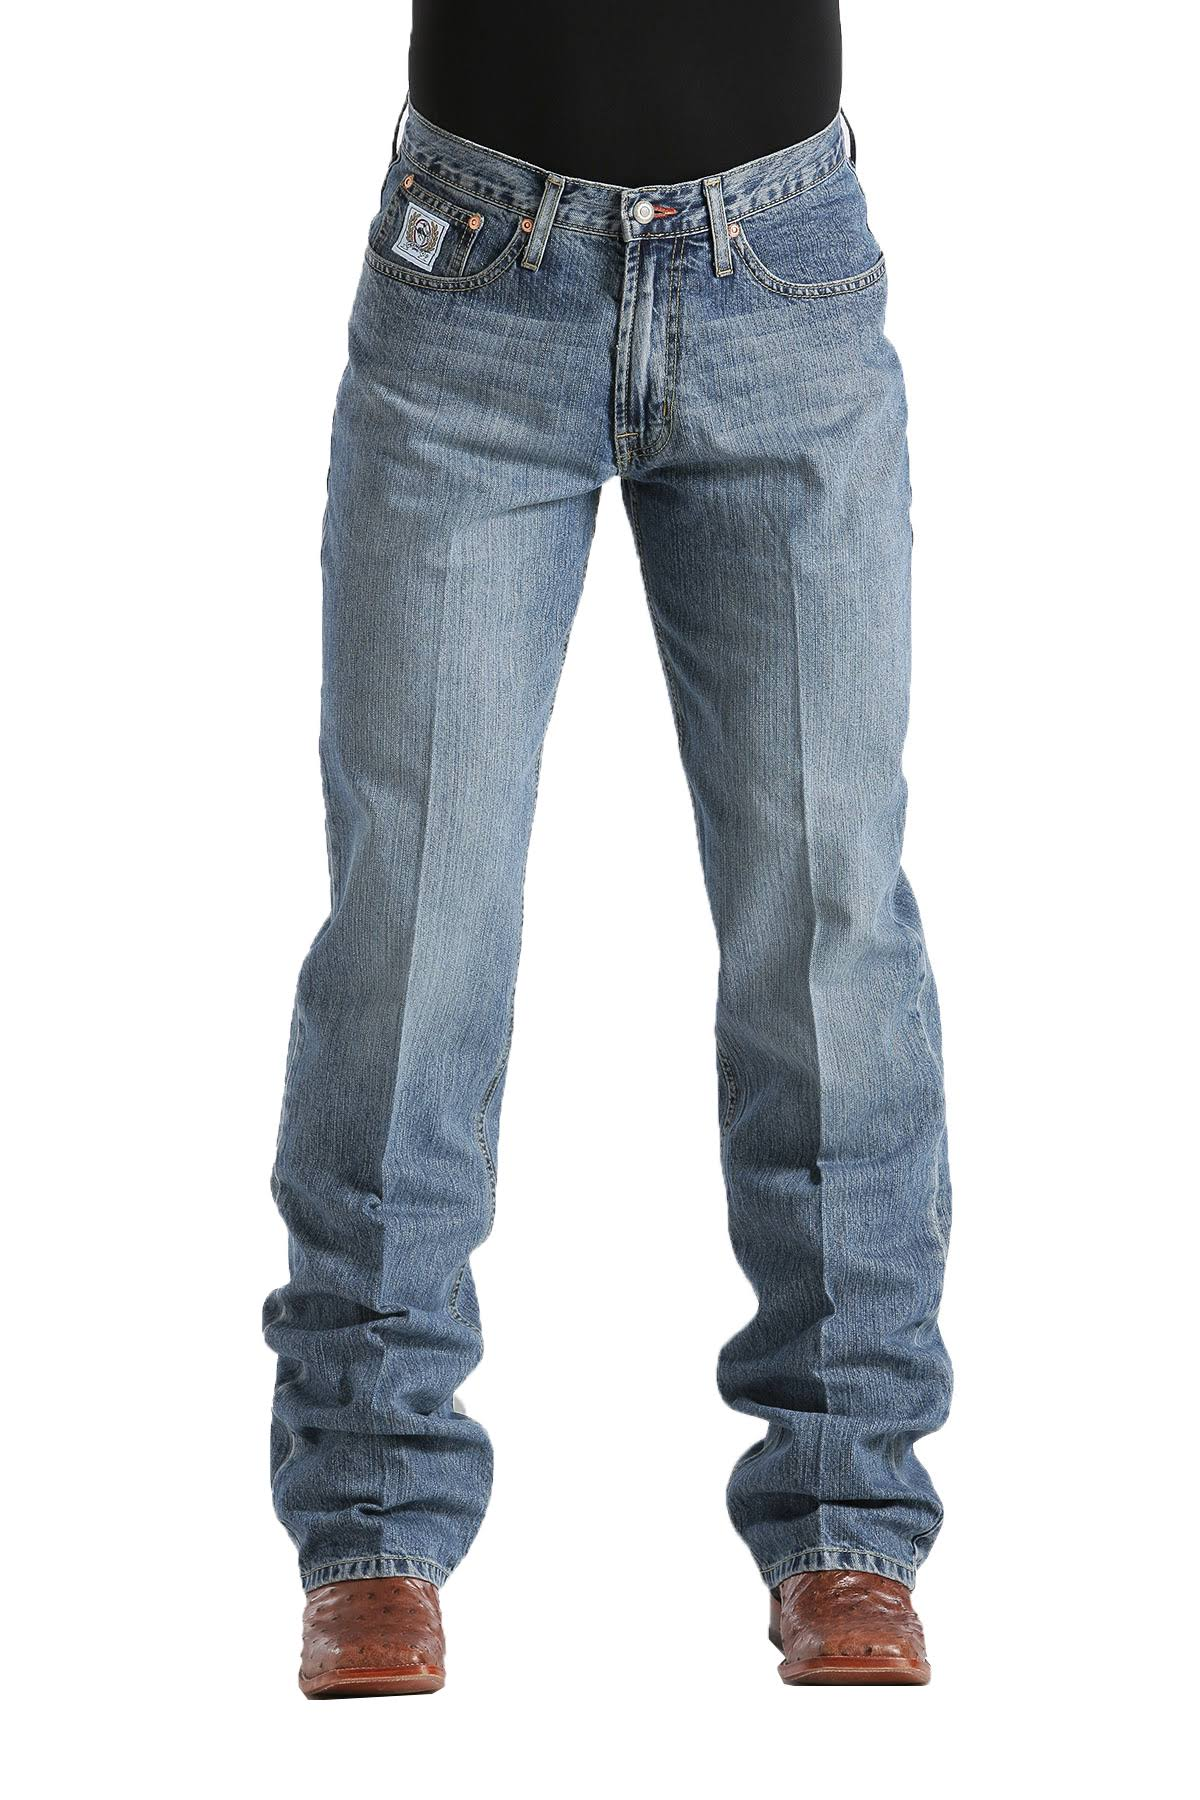 Cinch Men's White Label Relaxed Fit Jeans - Light Stone Wash, 40W x 34L